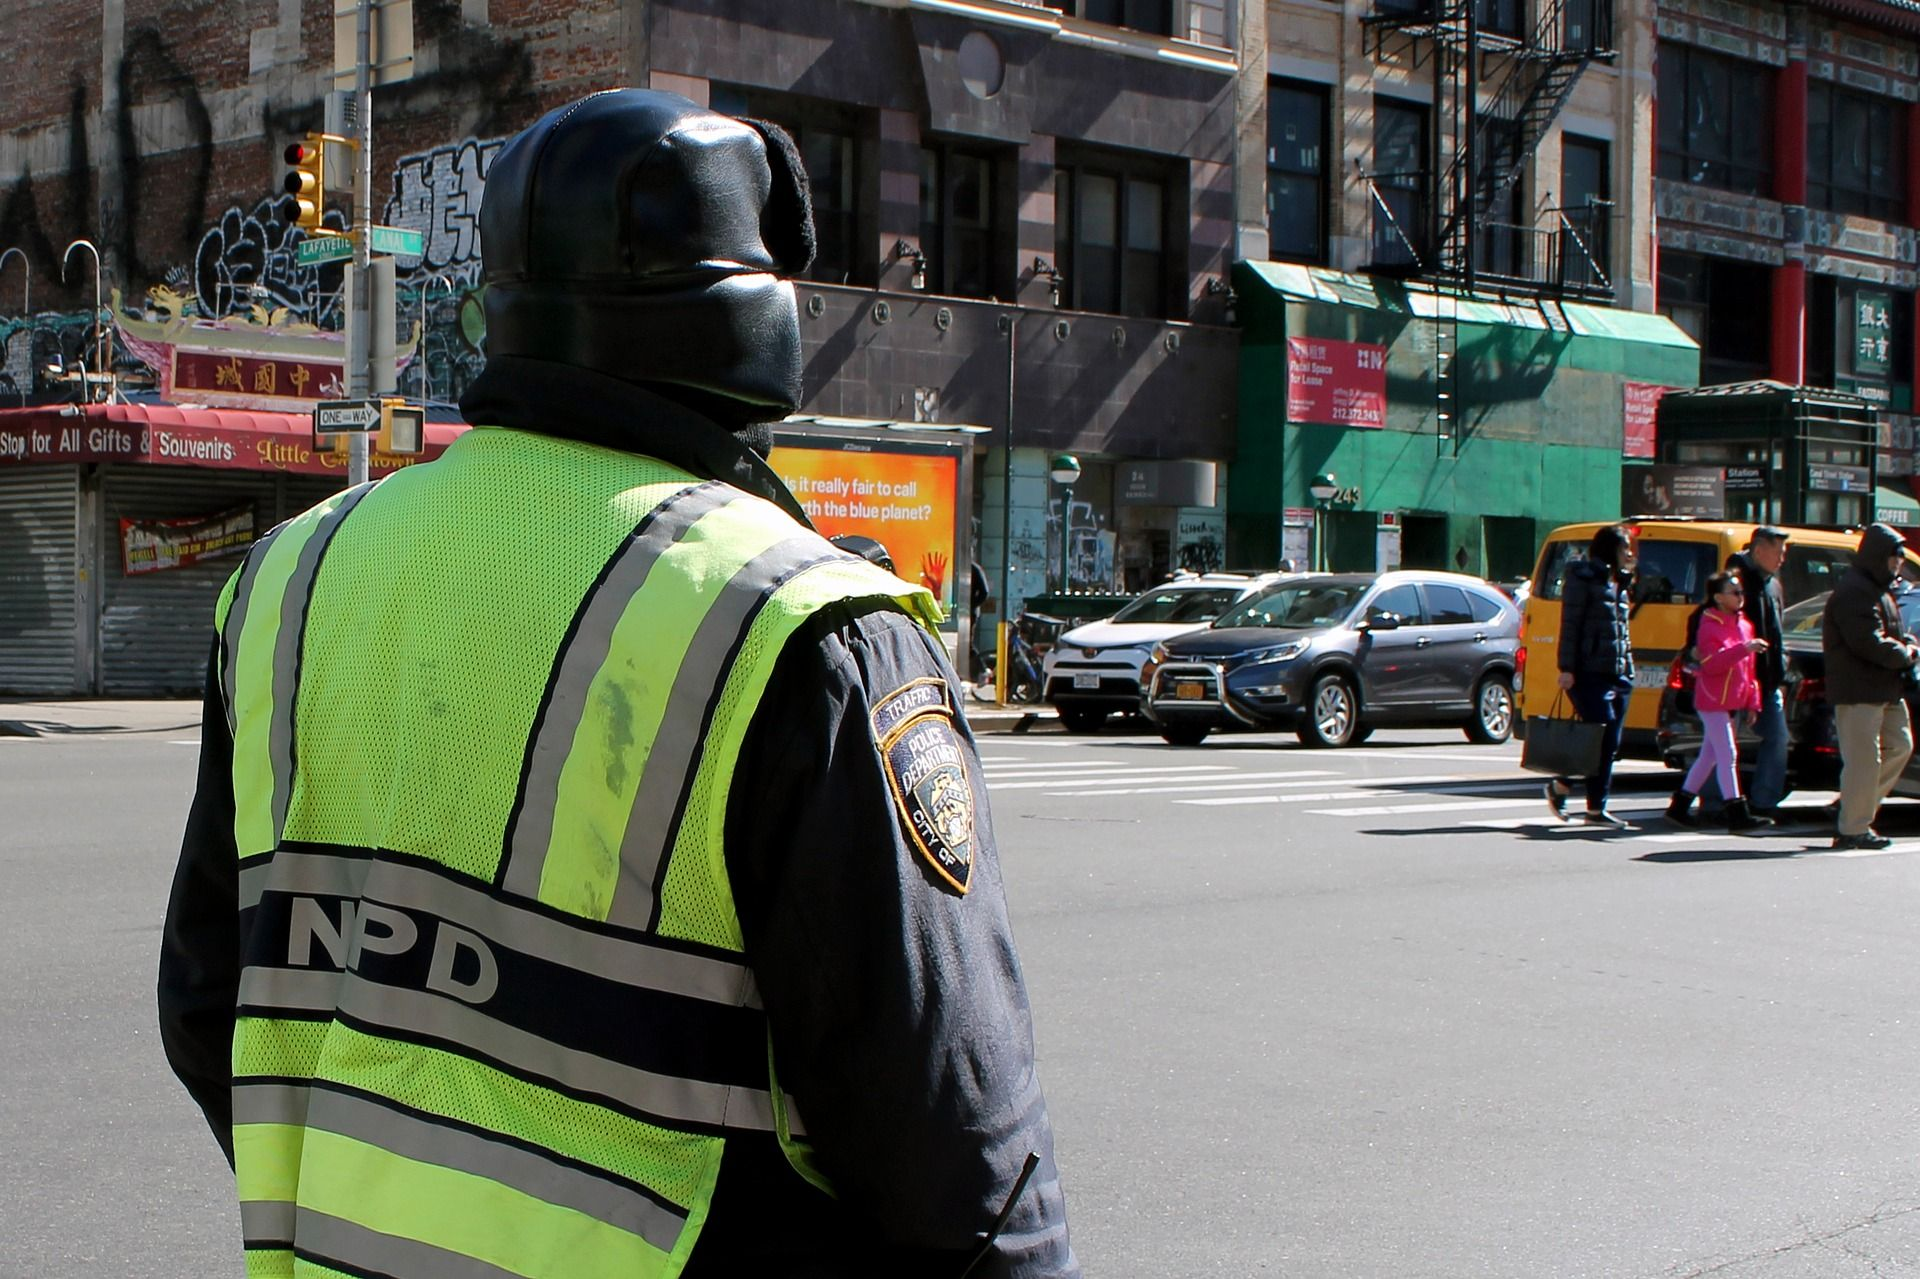 The NYC Police Department and The Department of